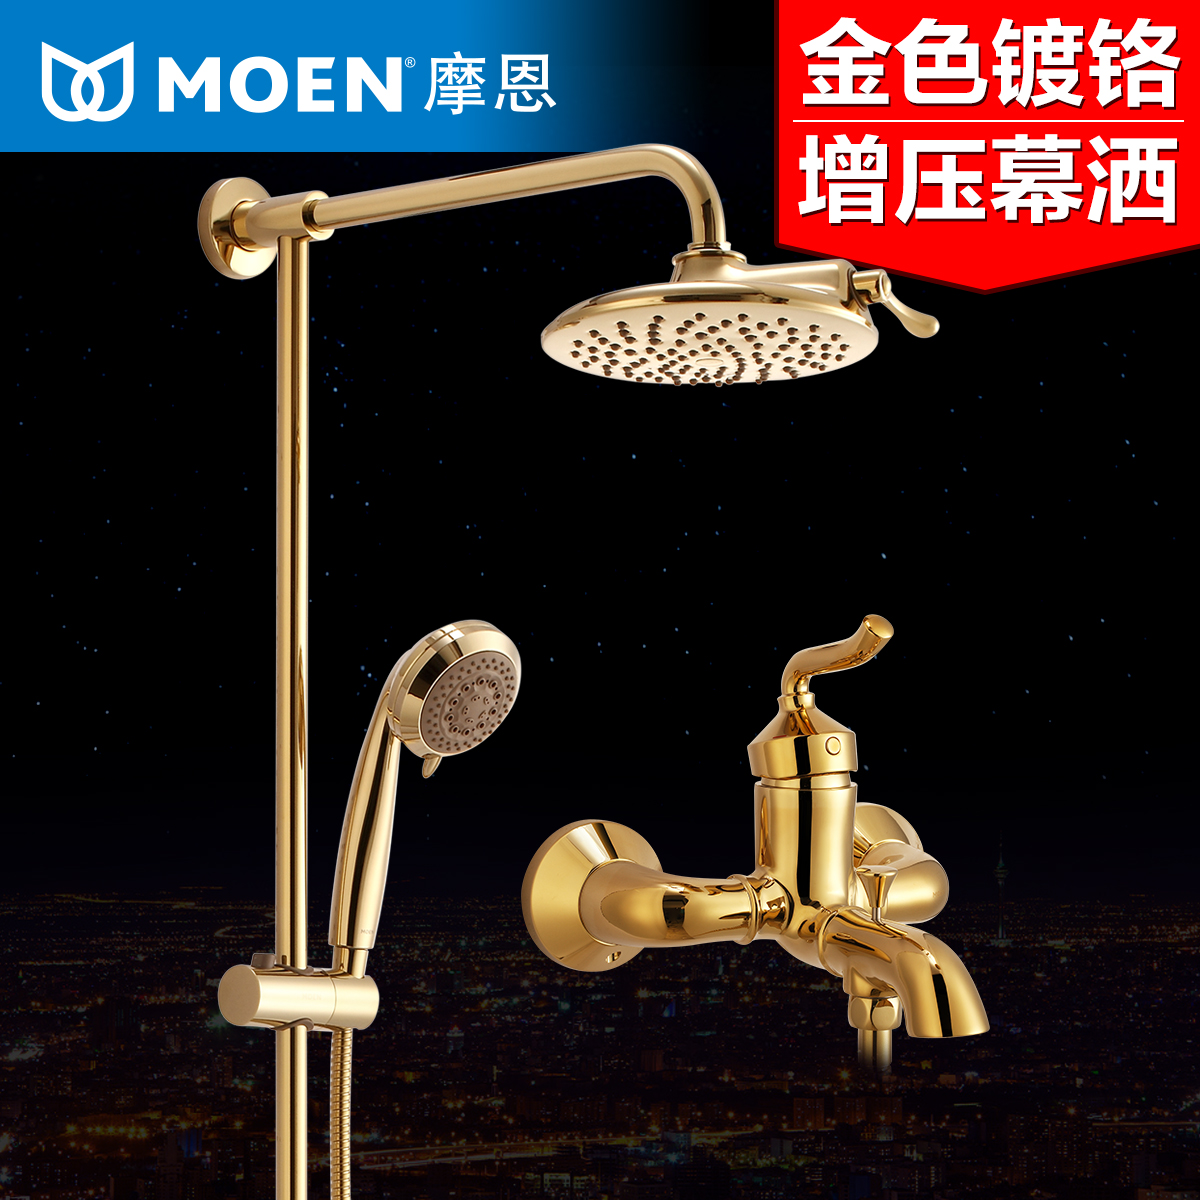 China Moen Shower Faucet, China Moen Shower Faucet Shopping Guide at ...